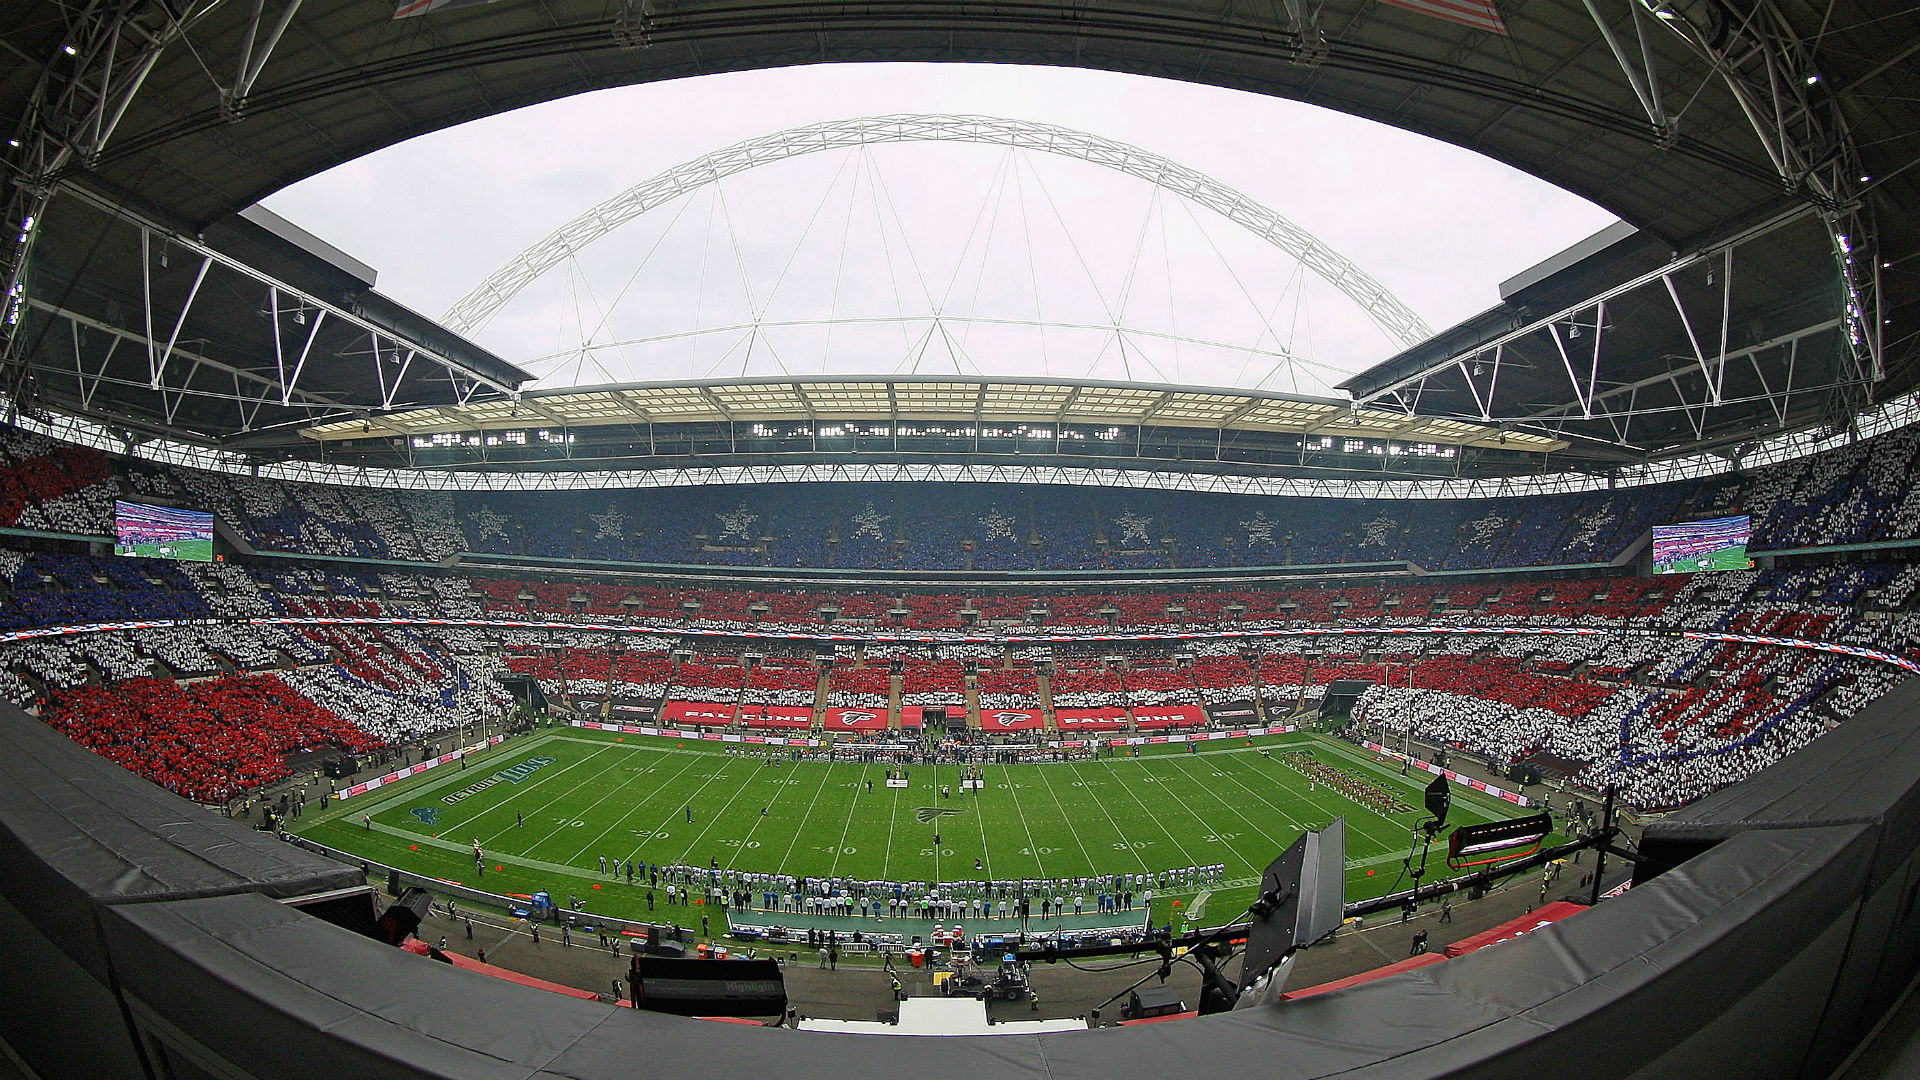 Packers won't be London opponent, Jaguars president says